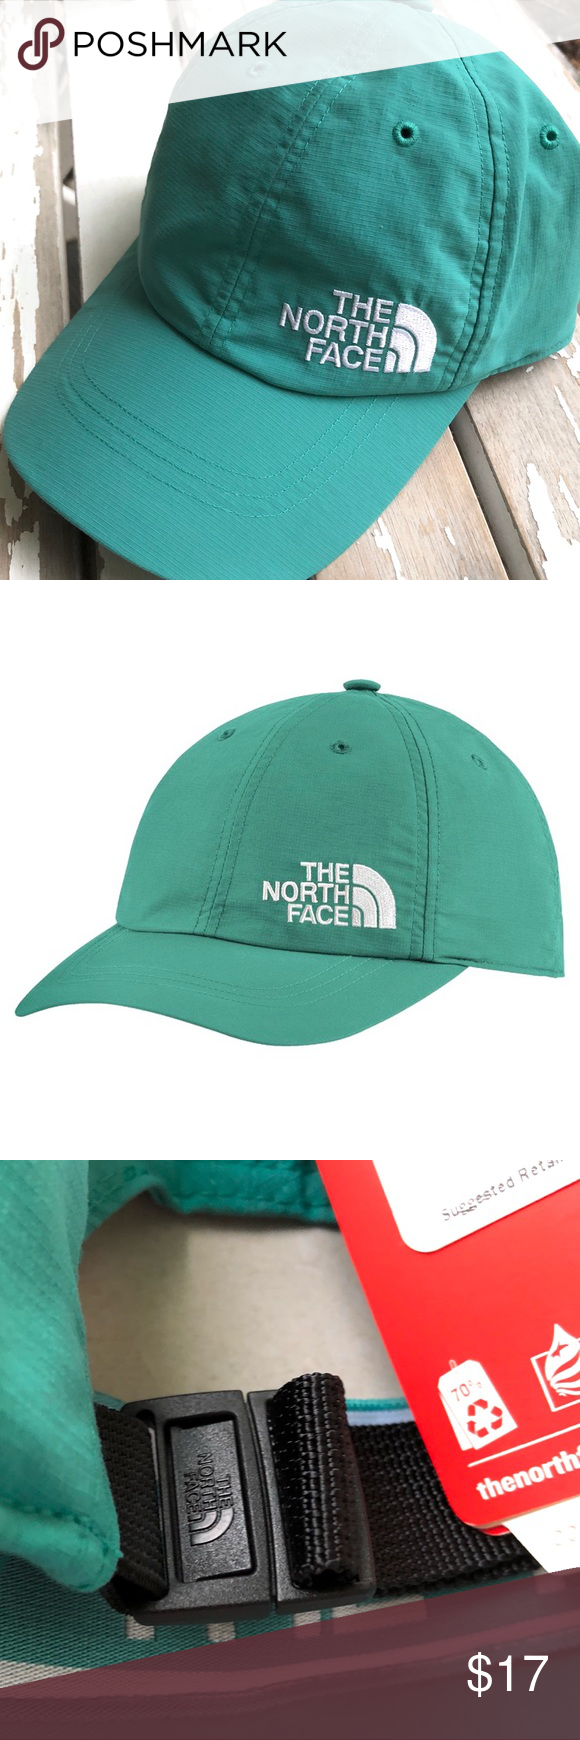 d6eb5857c NWT - NORTH FACE Horizon Ball Cap Hat Authentic THE NORTH FACE Women's  Horizon Ball Cap • Color: Porcelain Green / TNF White • Adjustable clip  closure with ...